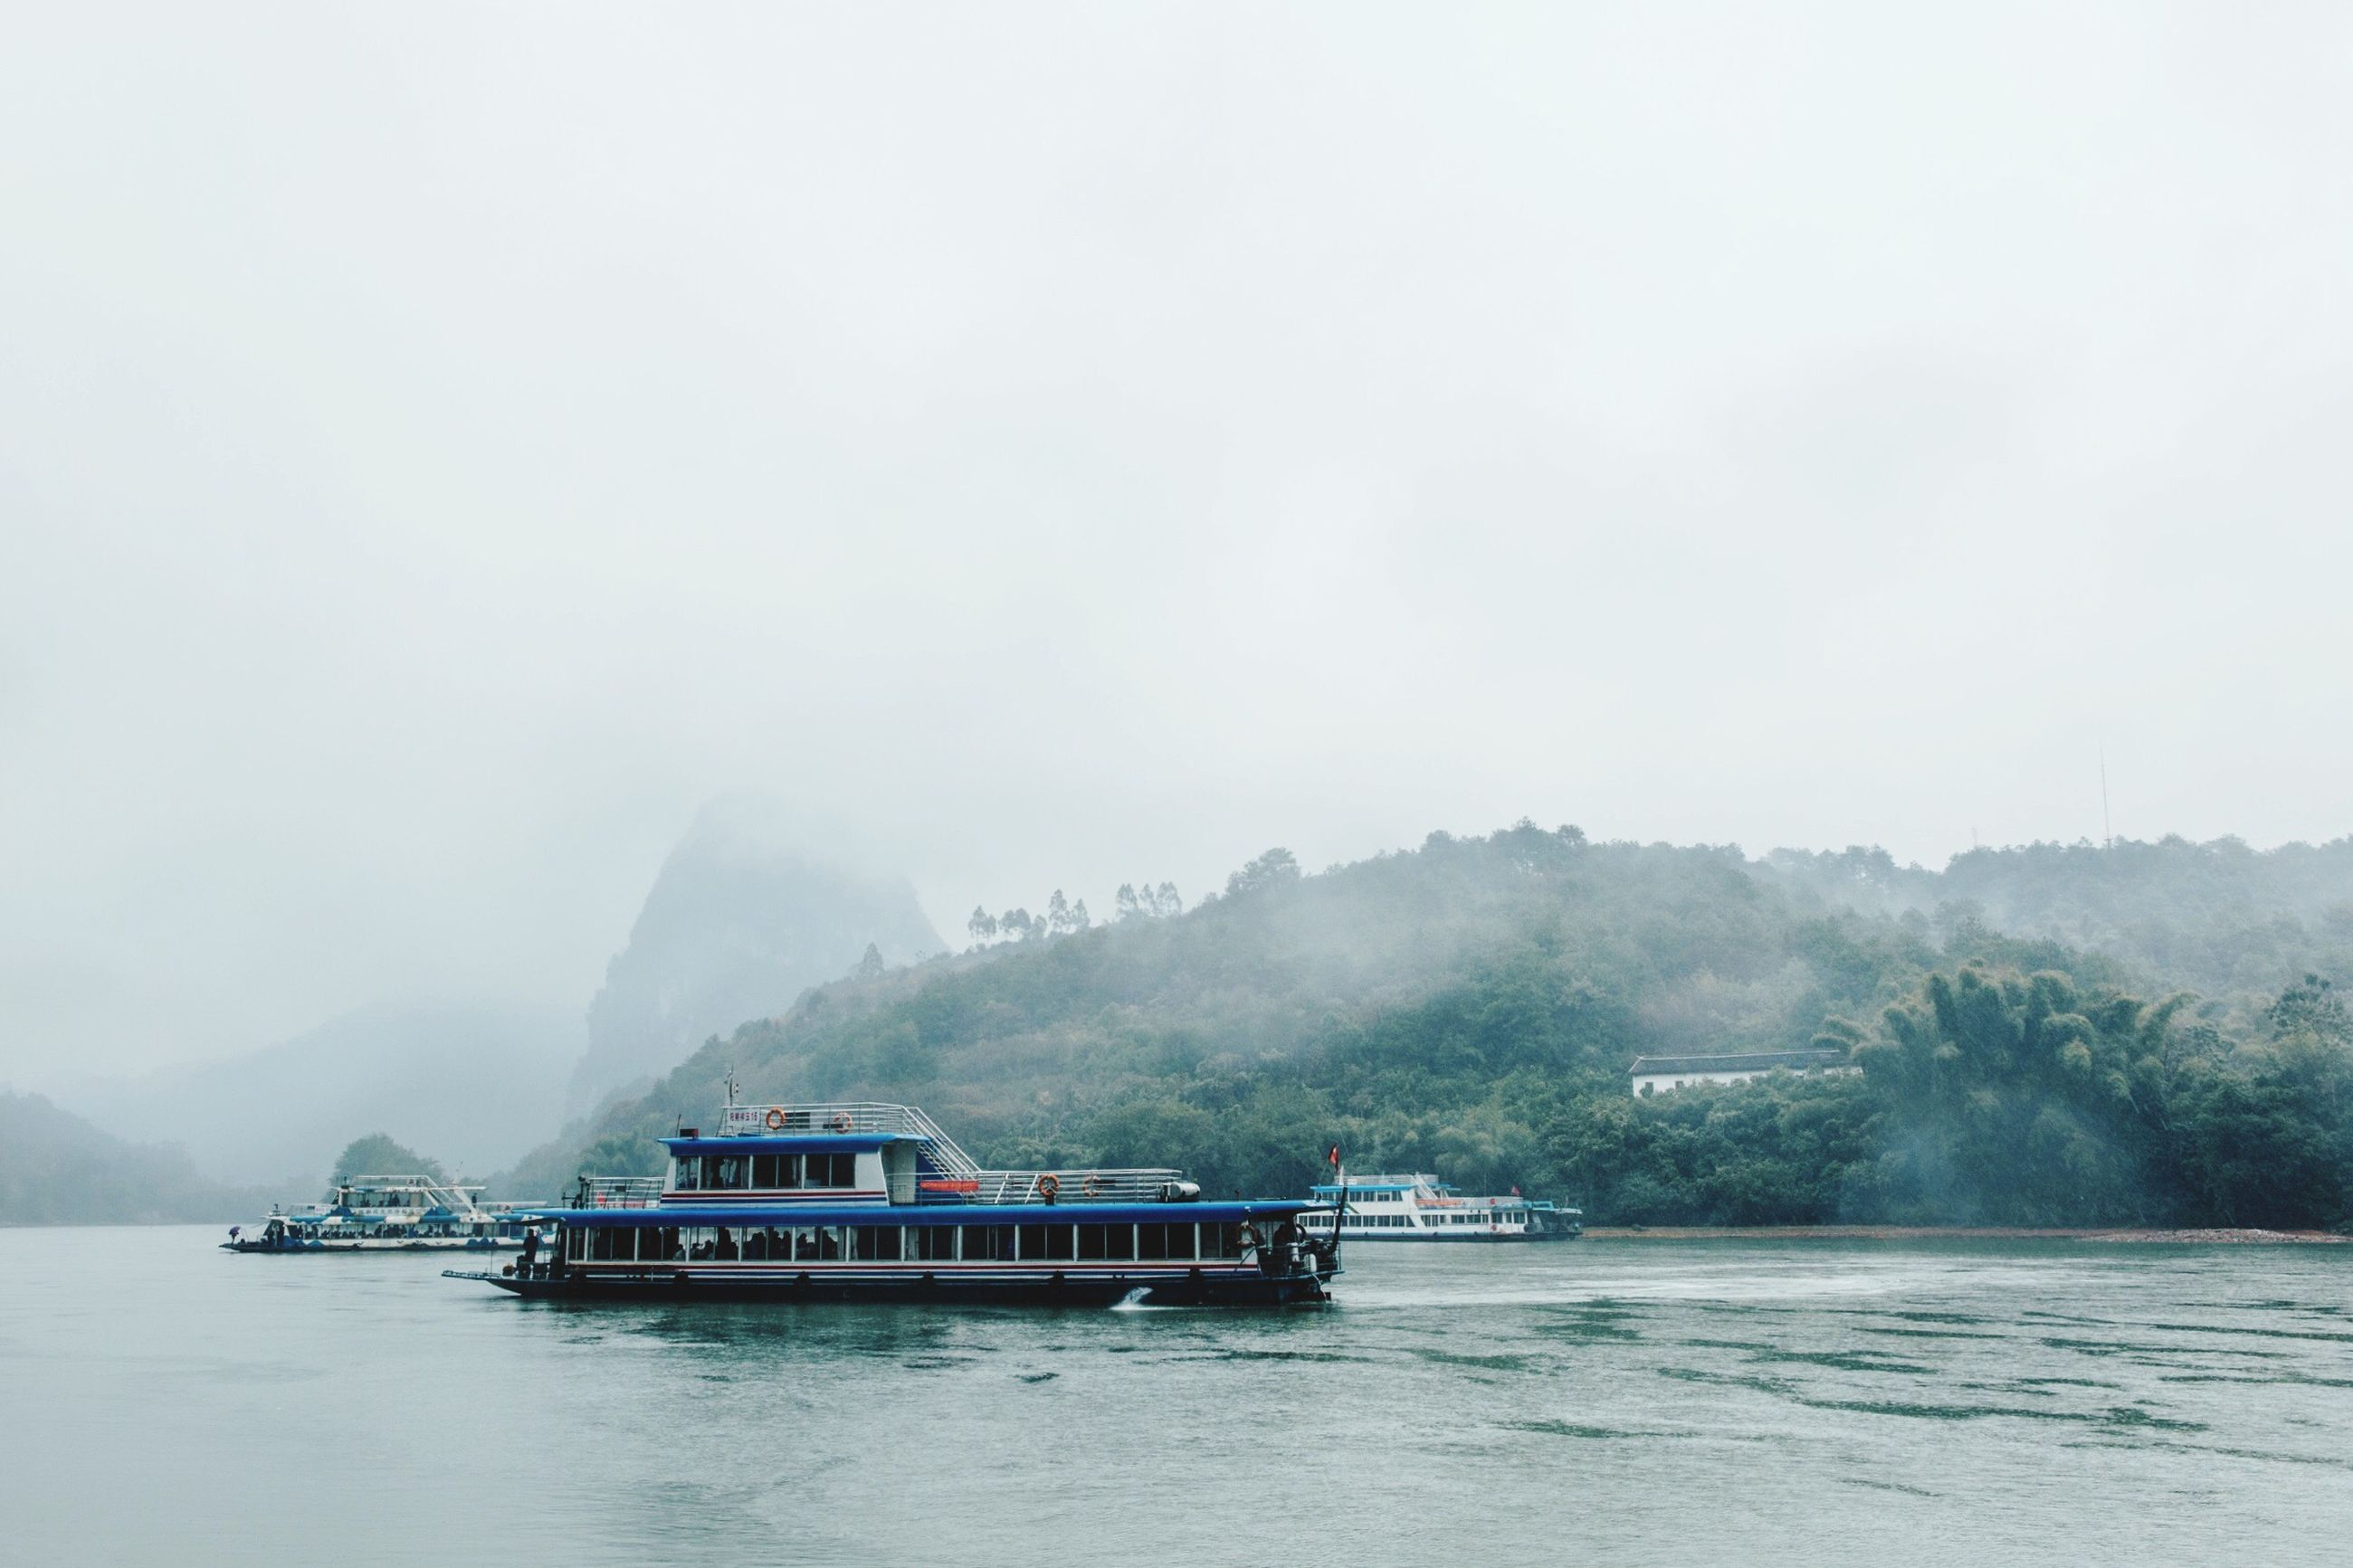 nautical vessel, mode of transport, nature, tranquil scene, fog, passenger craft, travel, beauty in nature, tranquility, tourism, water, environment, travel destinations, scenics, outdoors, boathouse, business finance and industry, mountain, ferry, sky, no people, architecture, day